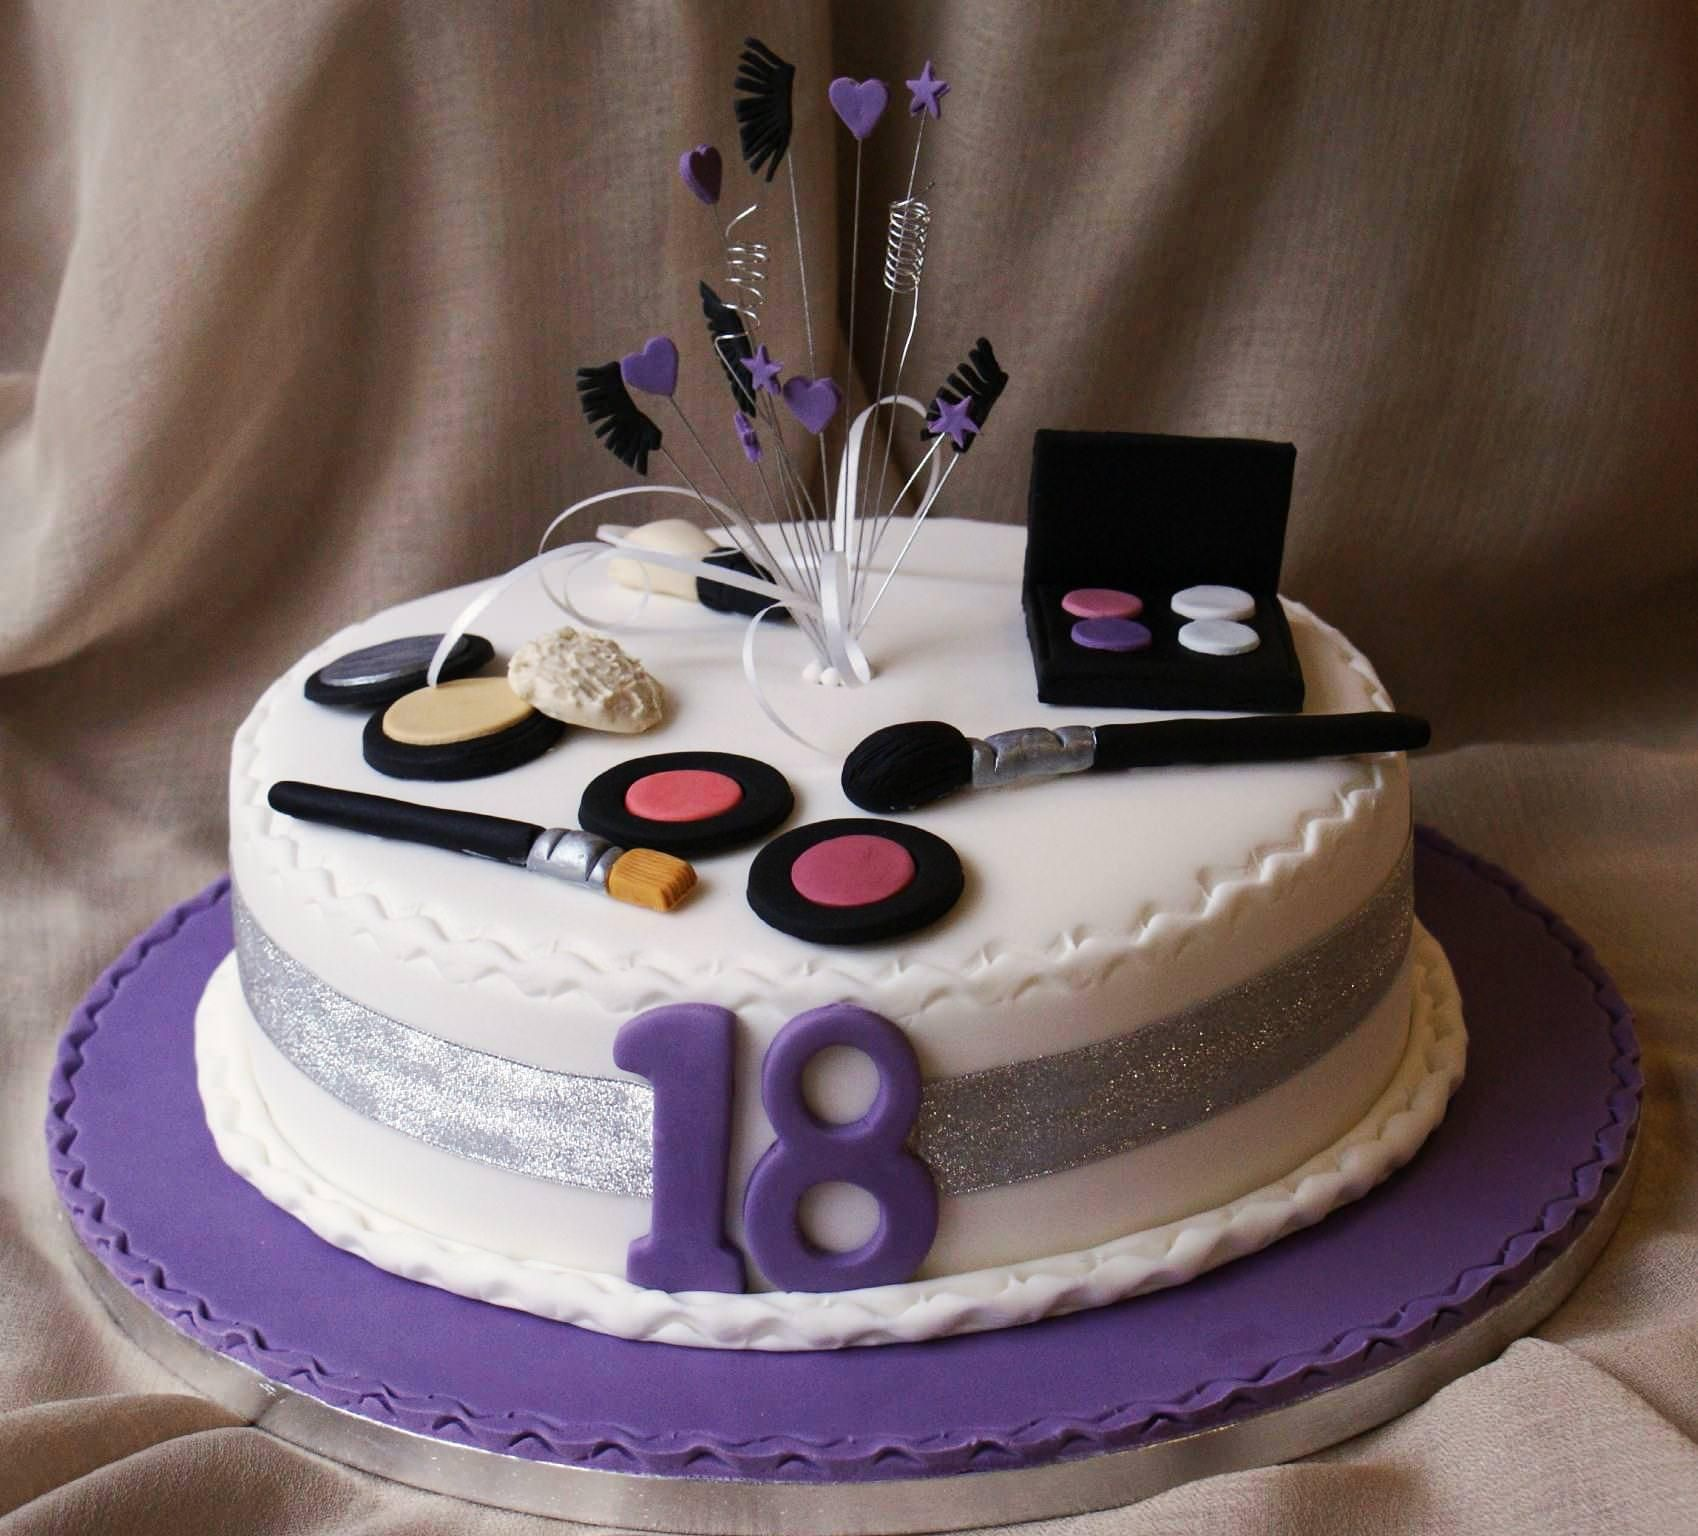 18th birthday cakes both for boys and girls cake ideas for 18th birthday decoration ideas for girls